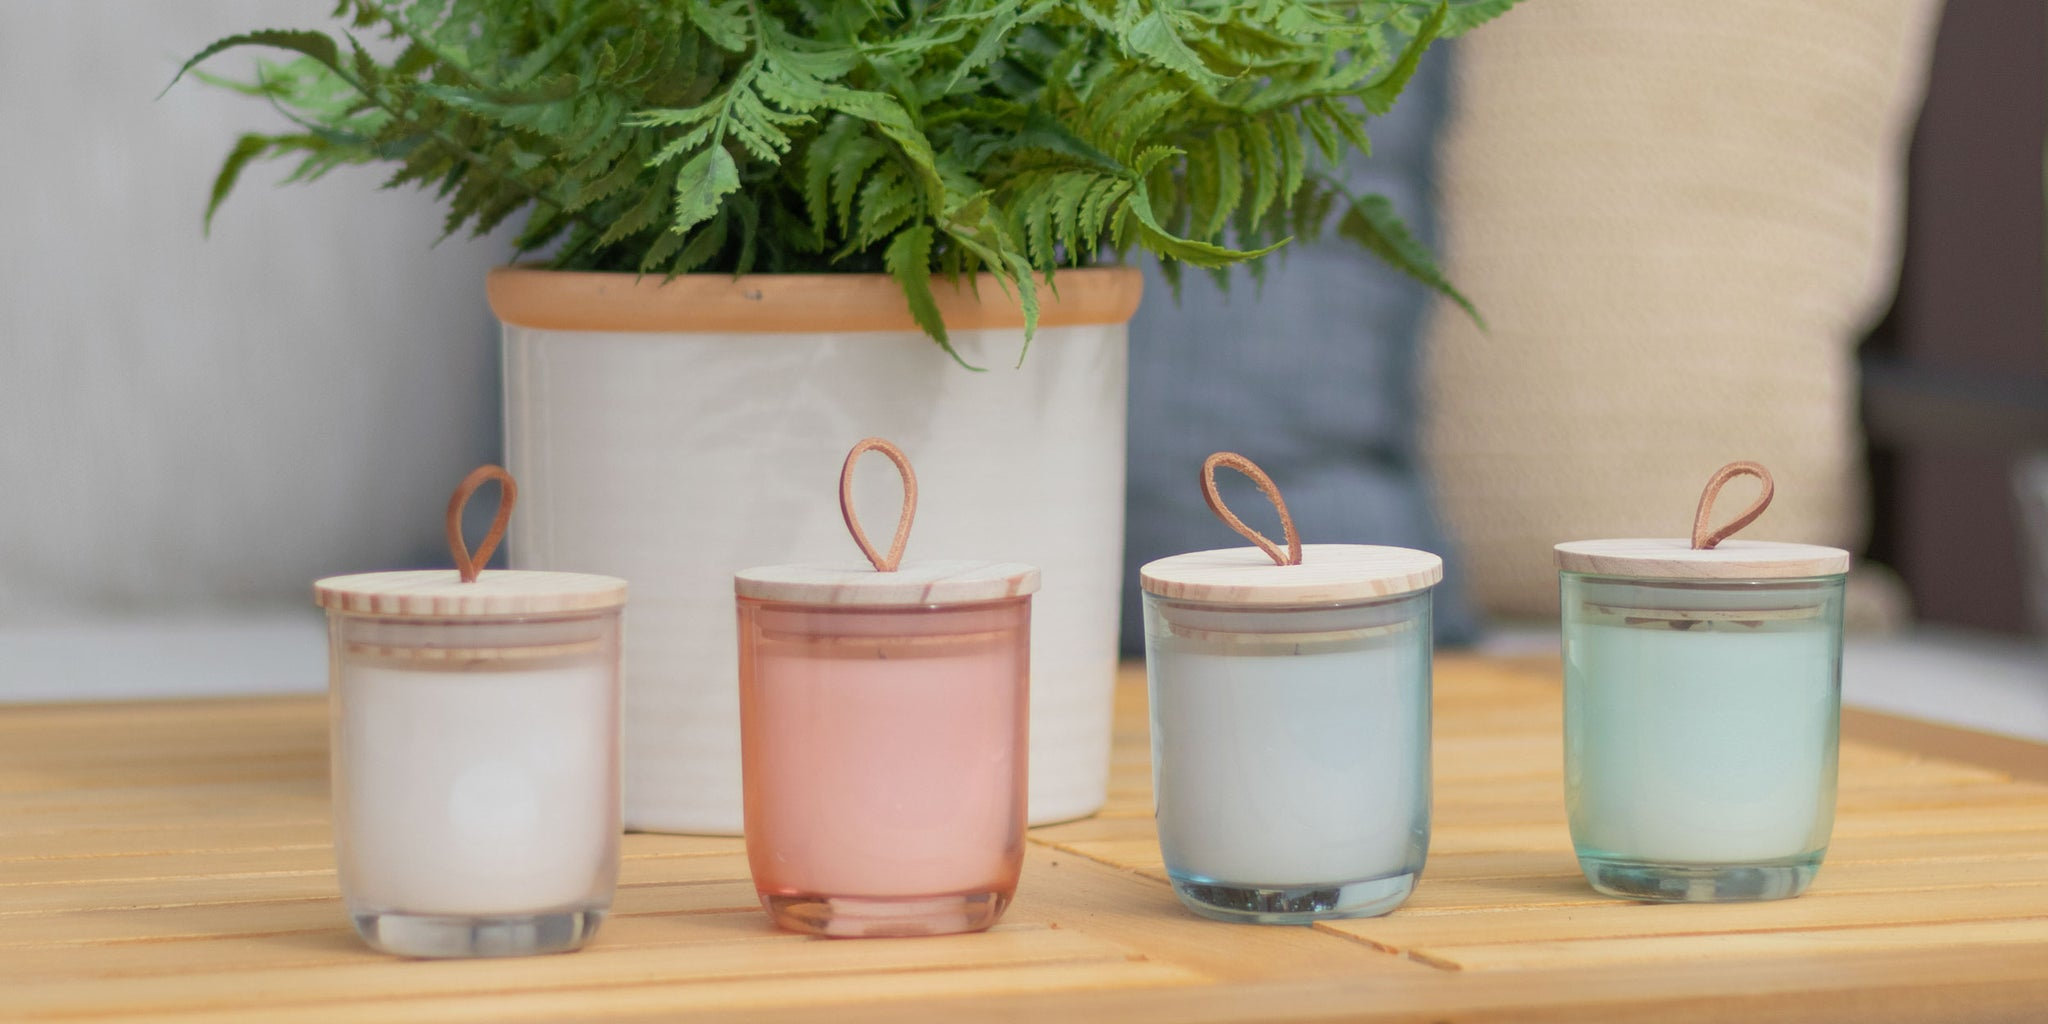 5 Galentine's Day Gift Ideas for 2021 (For Galentine's Near or Far) Citronella & Lemongrass Tinted Glass Candles | Patio Essentials